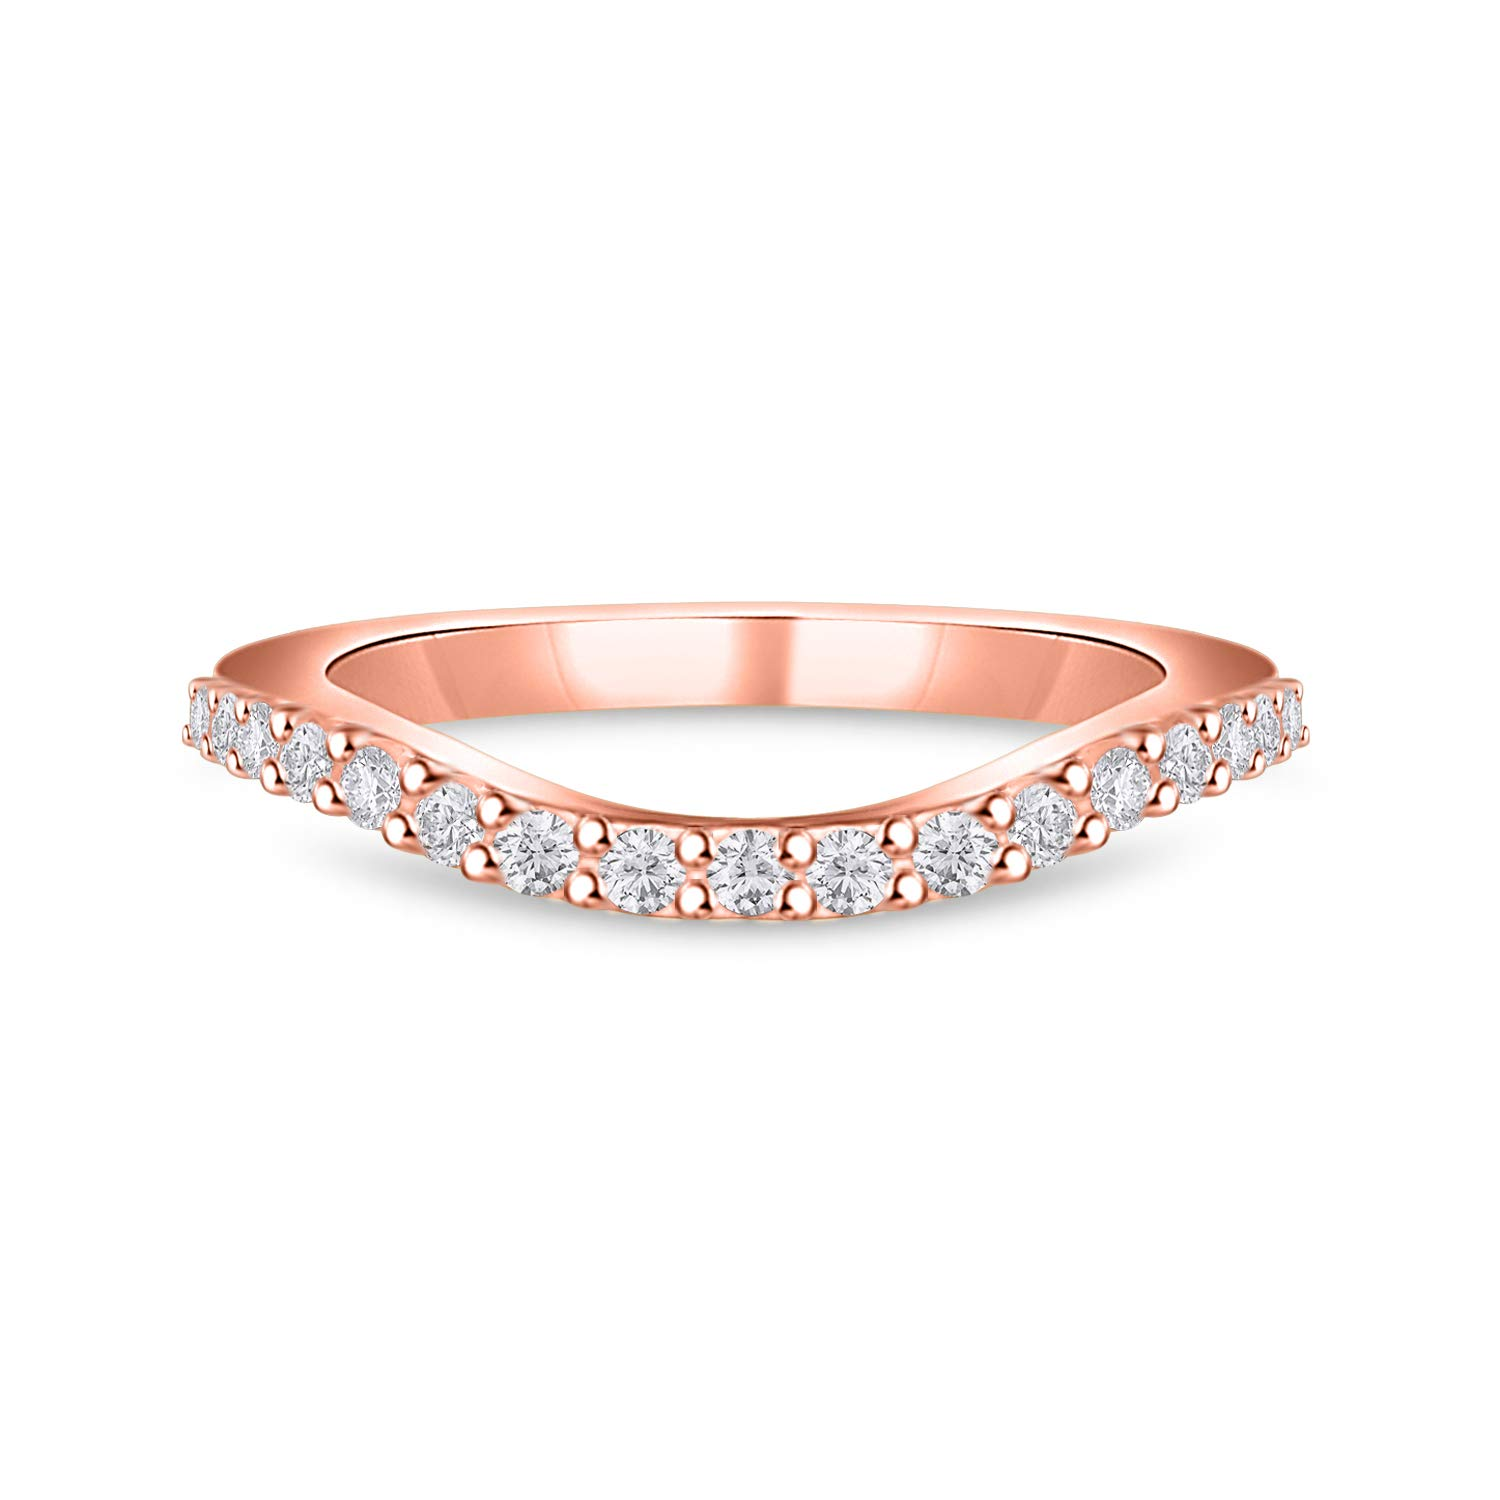 DiscountHouse4you Round White Simulated Diamond Curved Stackable Half Eternity Wedding Band Ring for Women 14k Gold Plated